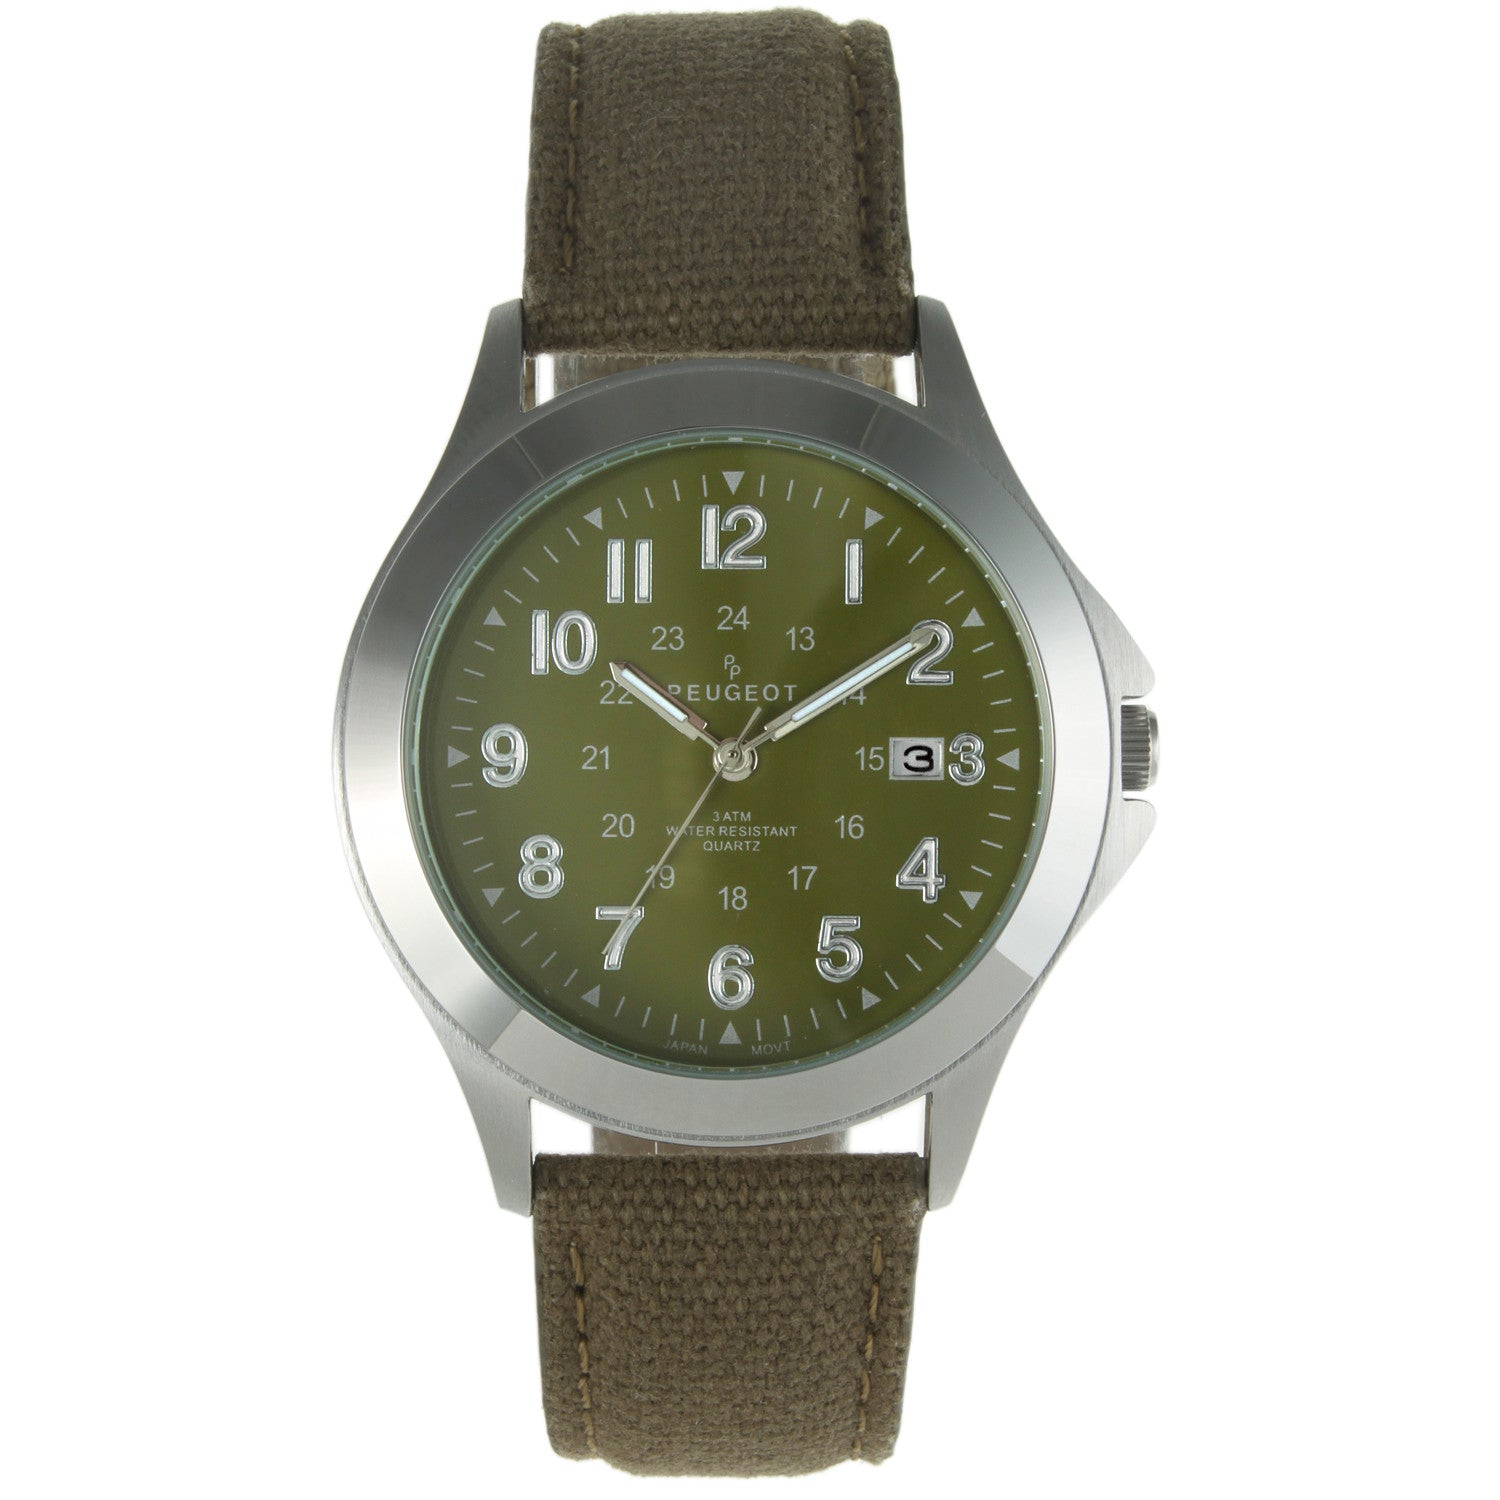 Stainless Steel 24HR Military Canvas Strap Watch - Green